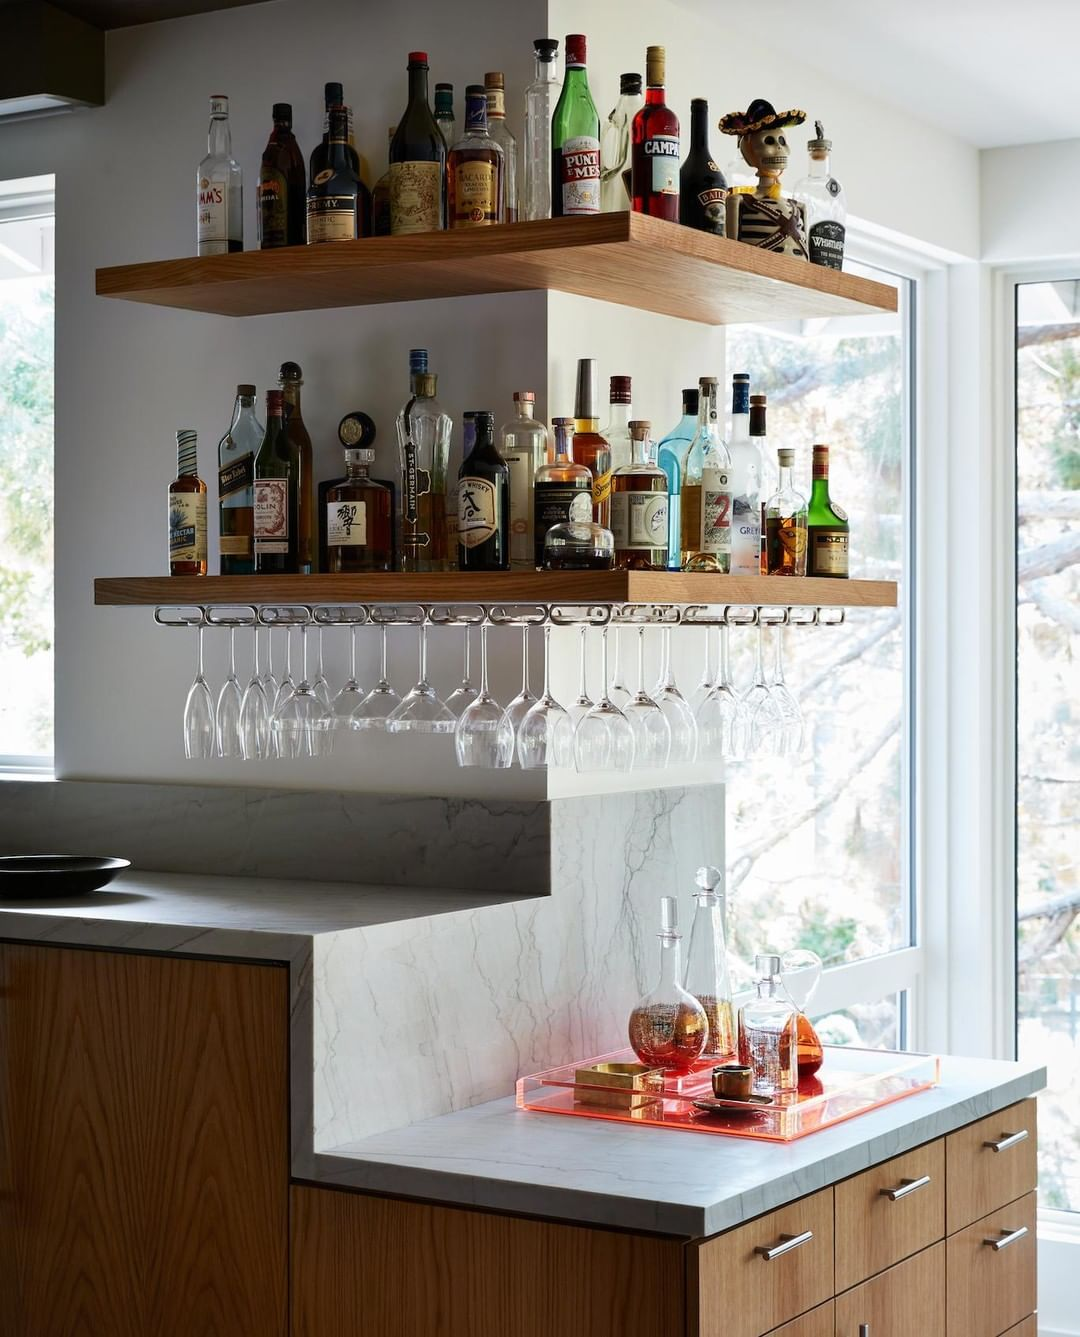 Chroma On Instagram Finding A Little Respite From The Work Week In This Home Bar From Our Northern California Col Colourful Shutters Home Remodeling Home Bar